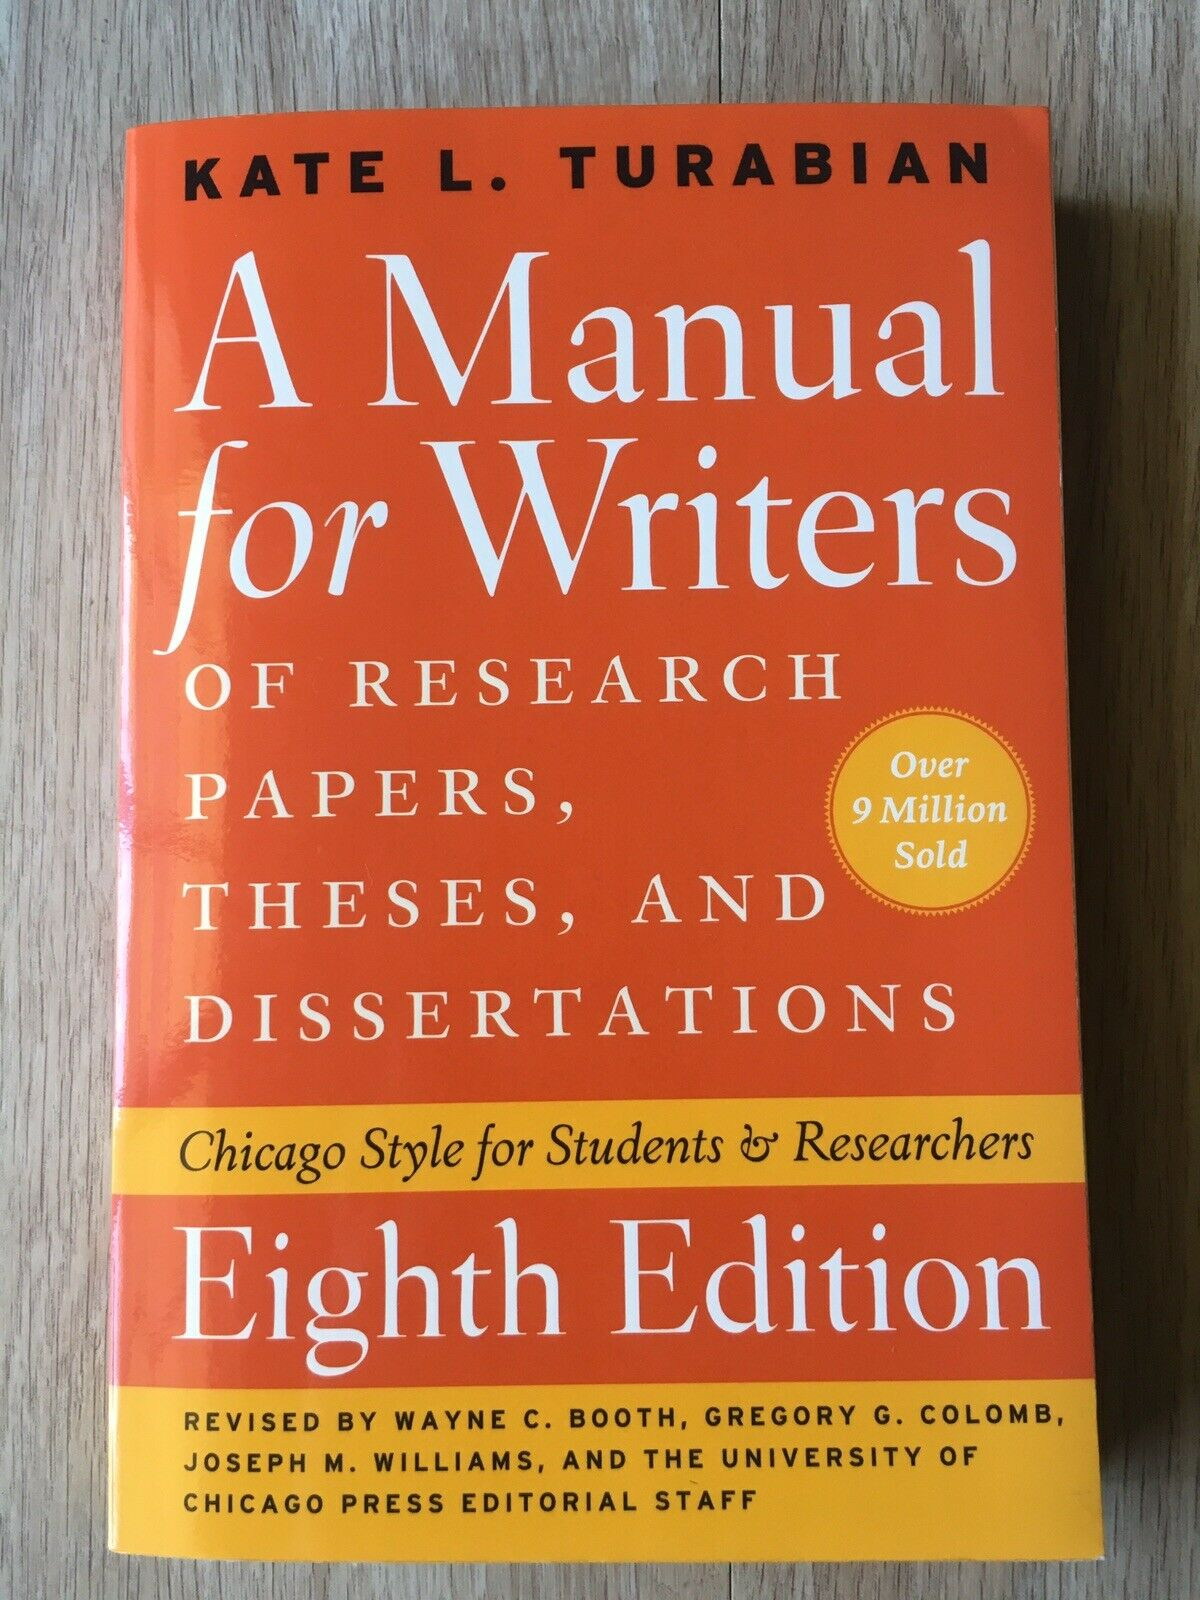 009 Research Paper Manual For Writers Of Papers Theses And Dissertations S Fearsome A Ed 8 Full